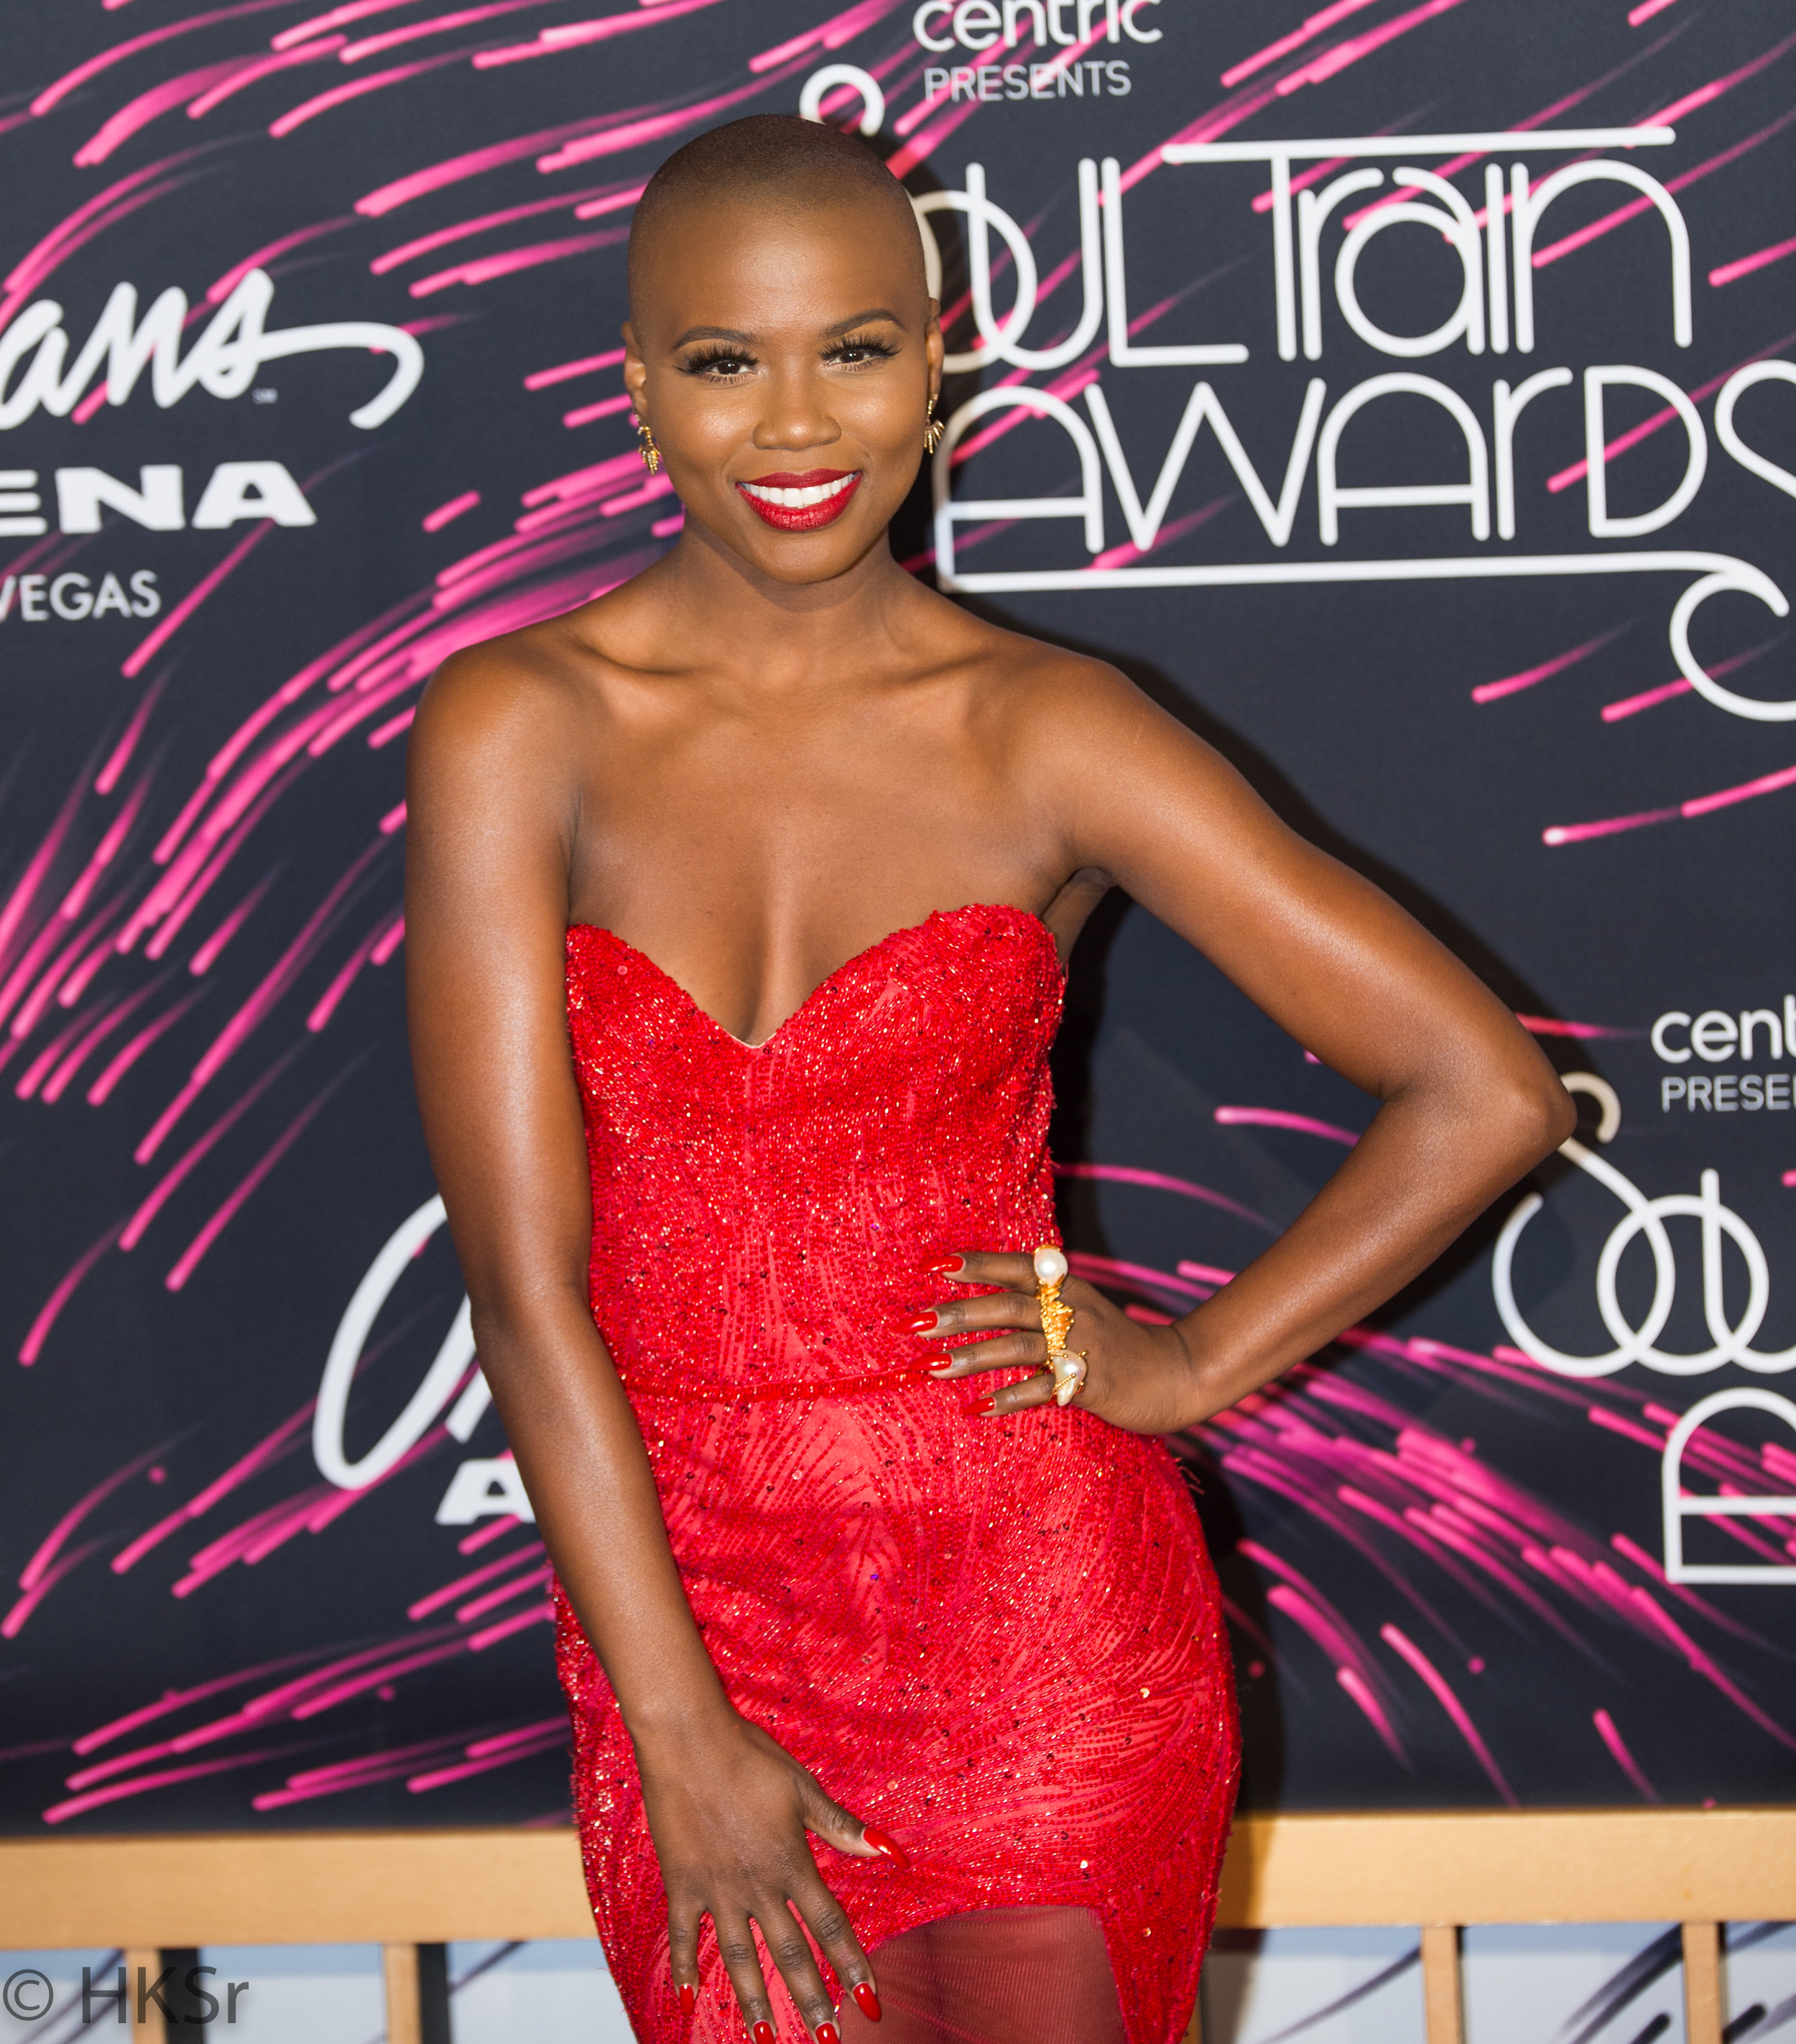 Victoria Bozeman looked stunning in her red dress on the red carpet at the Soul Train Awards